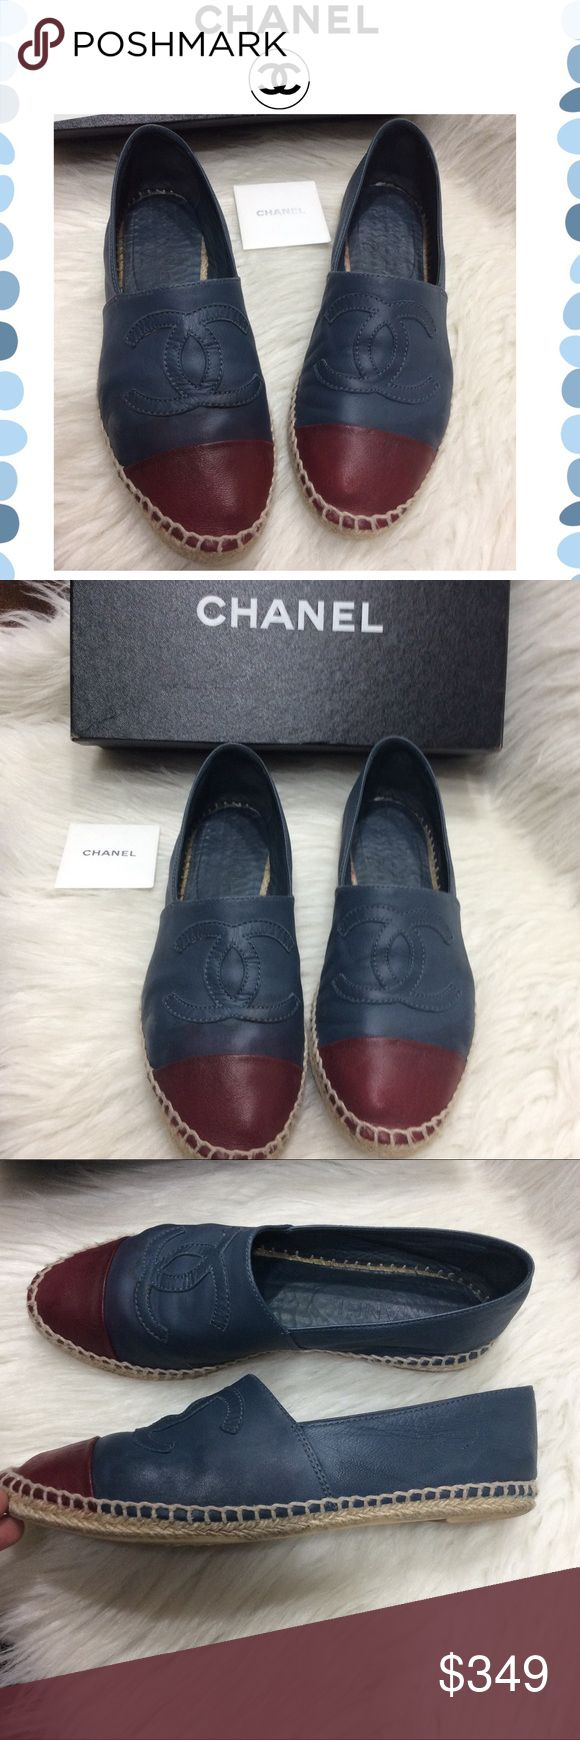 Authentic Chanel Espadrilles Authentic blue & burgundy leather Espadrilles. Preowned condition. They show wear throughout. Rubbing on edges, sides and top of the shoe. Some light discoloration and color fading as shown. No rips or tear. Super cute & comfy. This pair is from the first Espadrilles a few years back . Original box included. Size 39 but run as size 7/7.5. I'm a size 7 and they fit great CHANEL Shoes Espadrilles